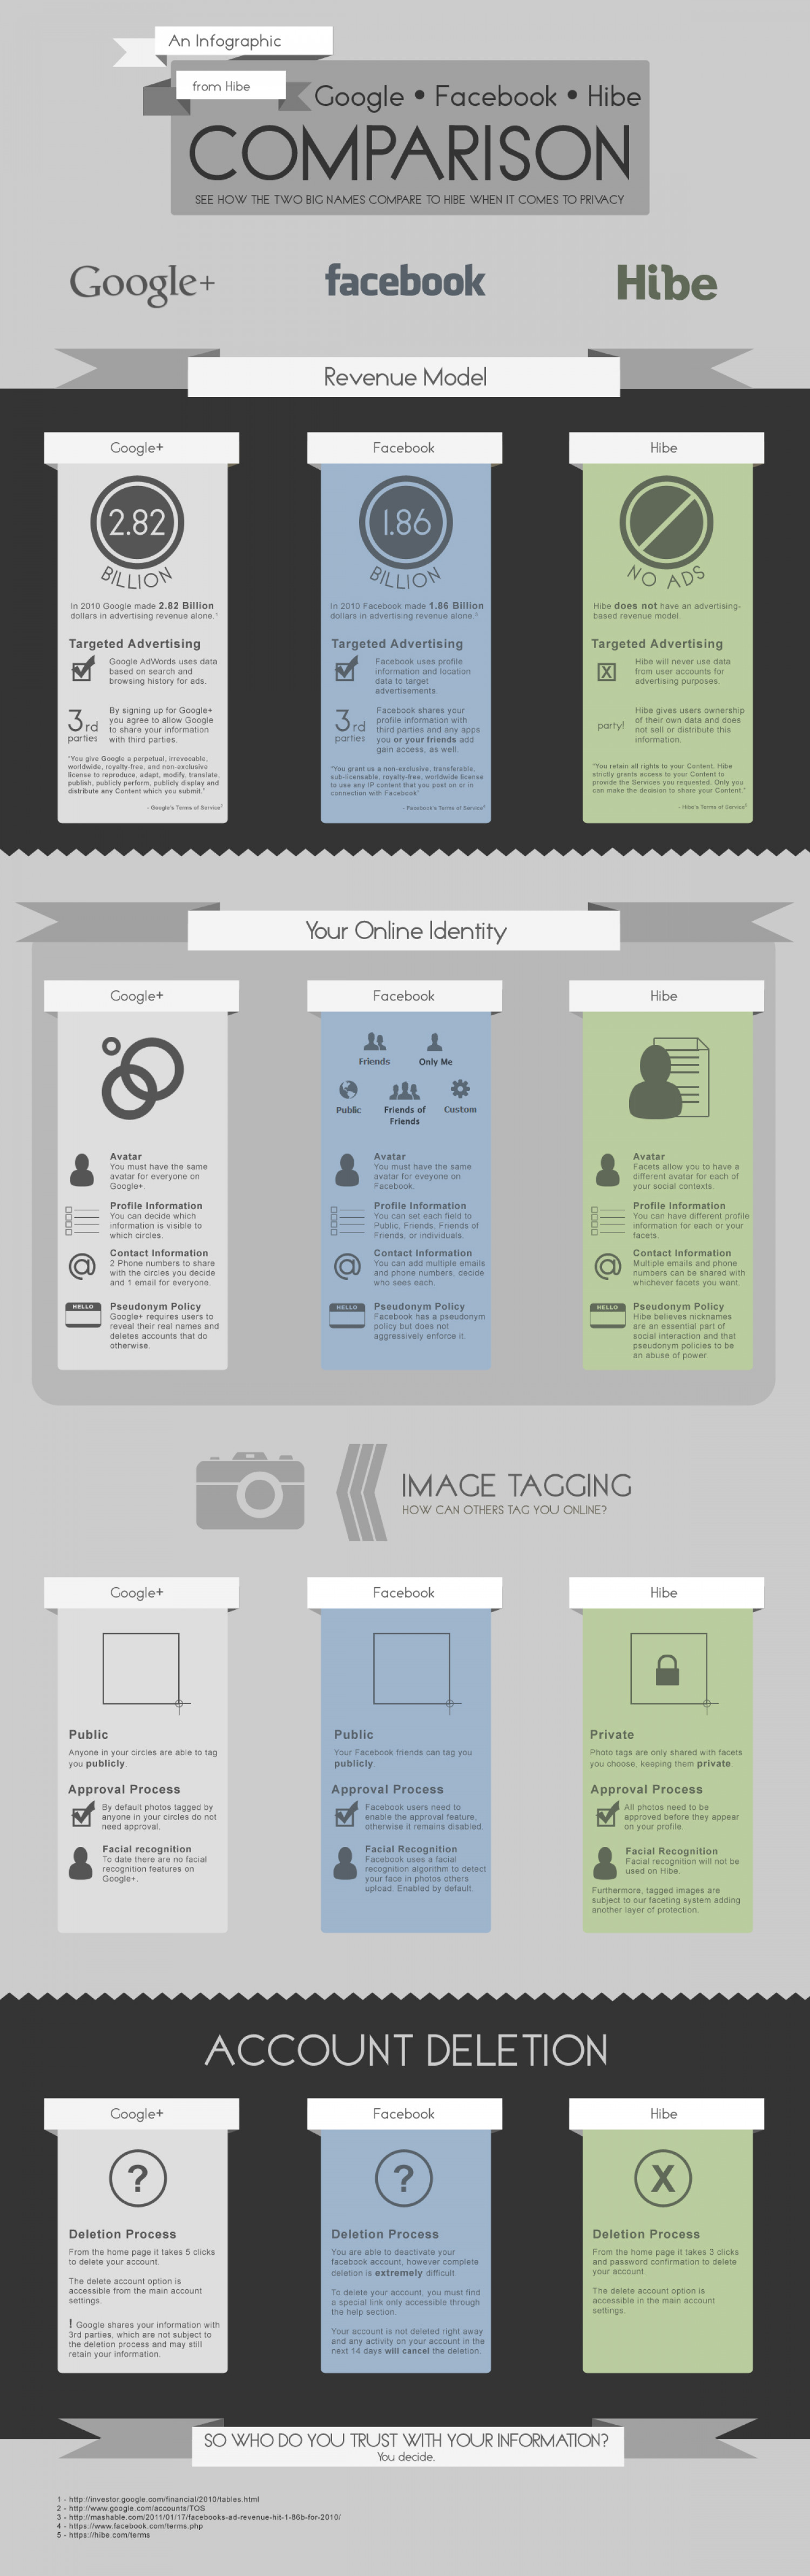 Who Do You Trust With Your Information? Infographic